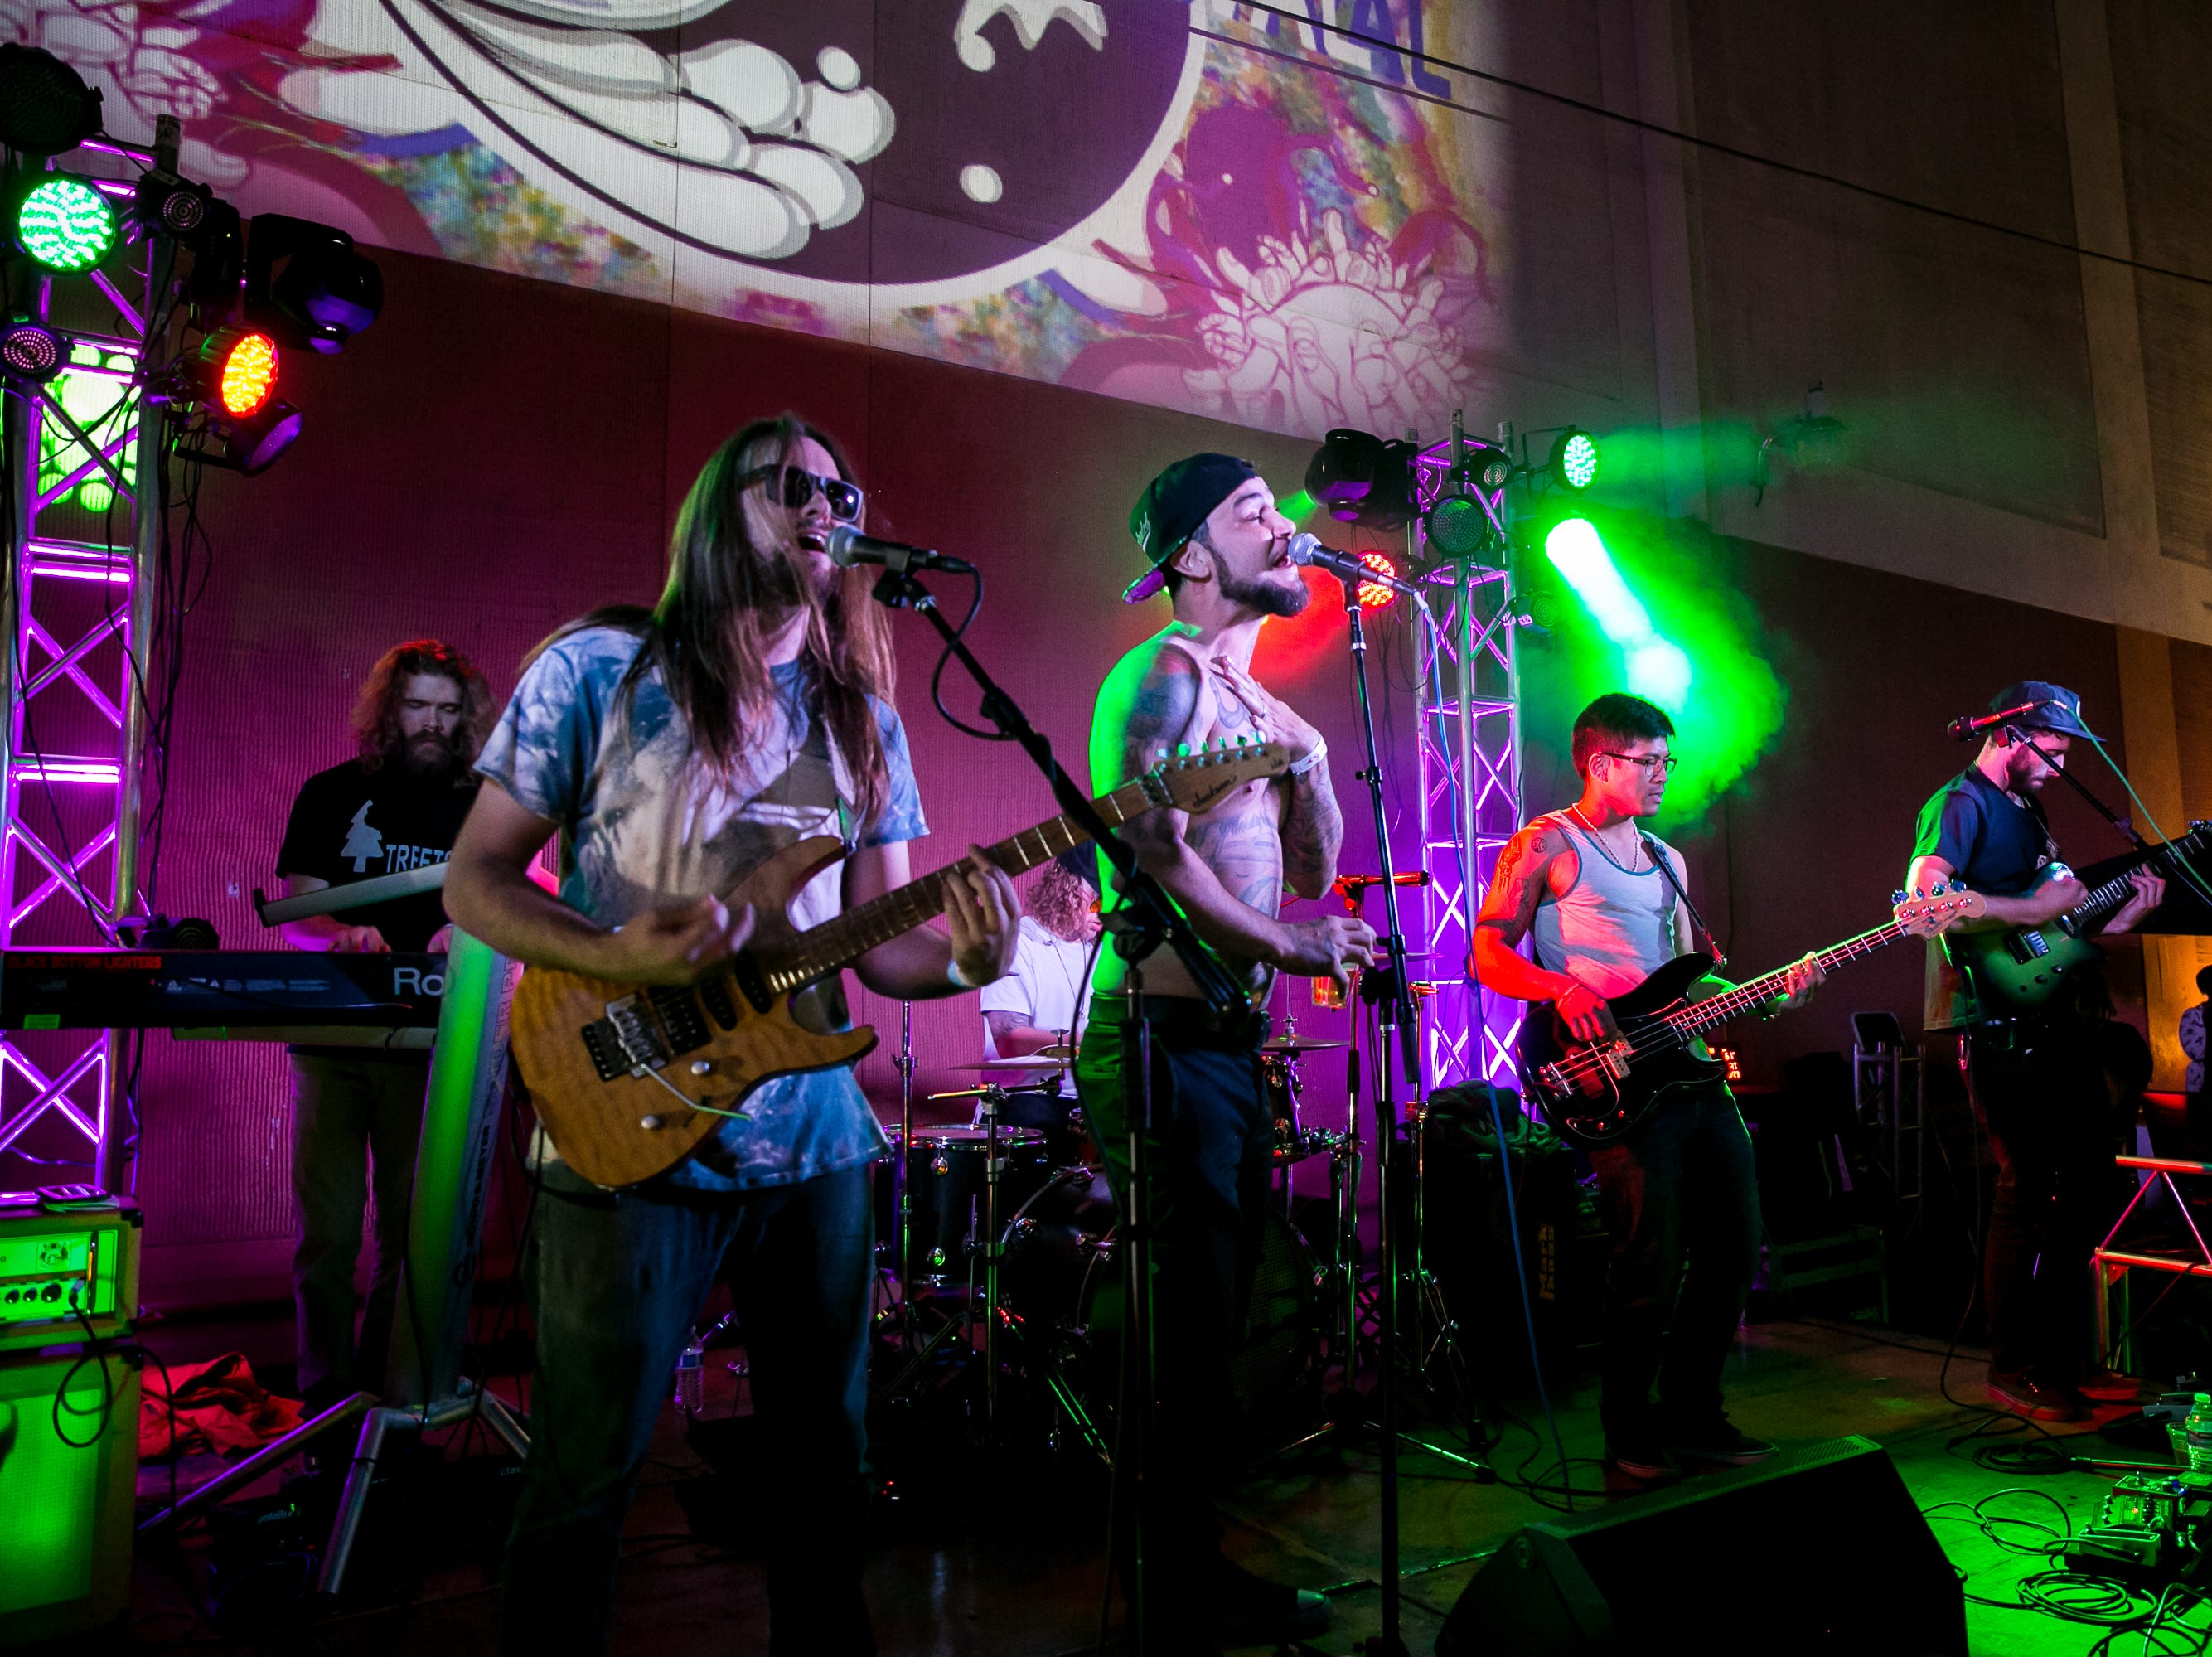 Black Bottom Lighters performed at the Full Moon Festival at the Pressroom on March 23, 2019.